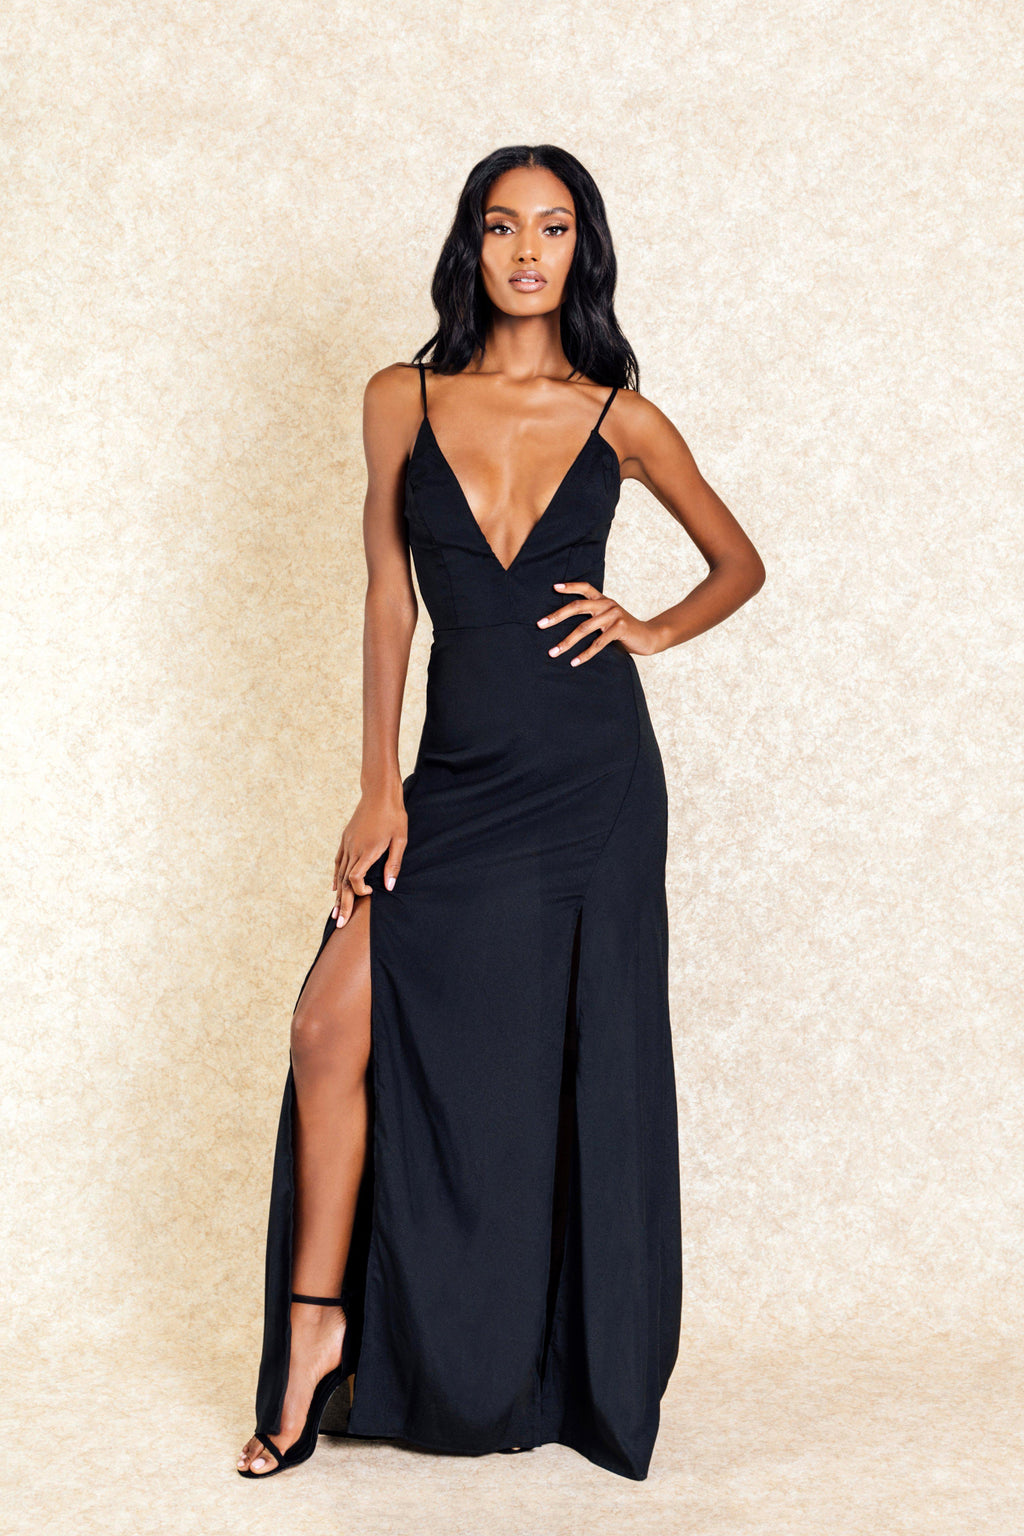 Tanisha Black Maxi Double Slit Dress - Klasha